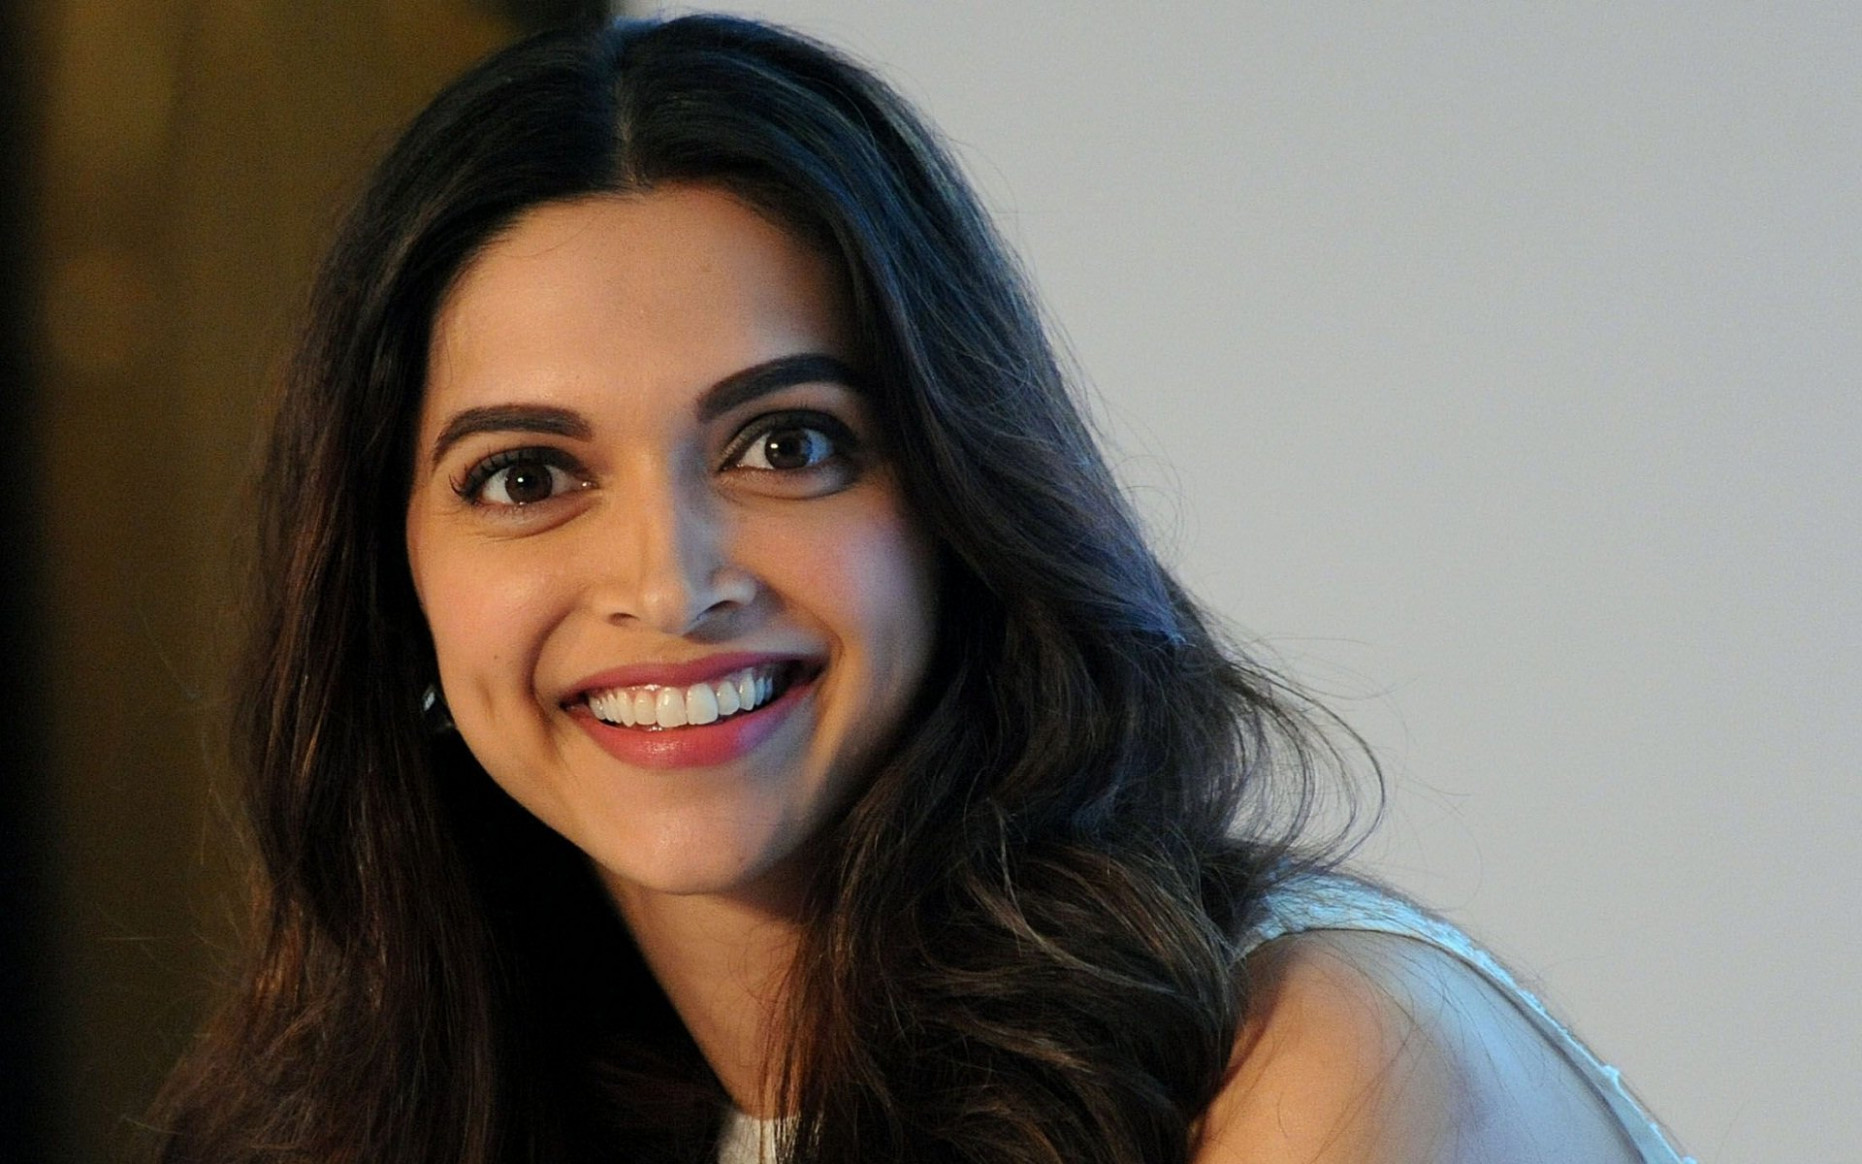 Deepika Padukone very happy with beautiful smile face ..